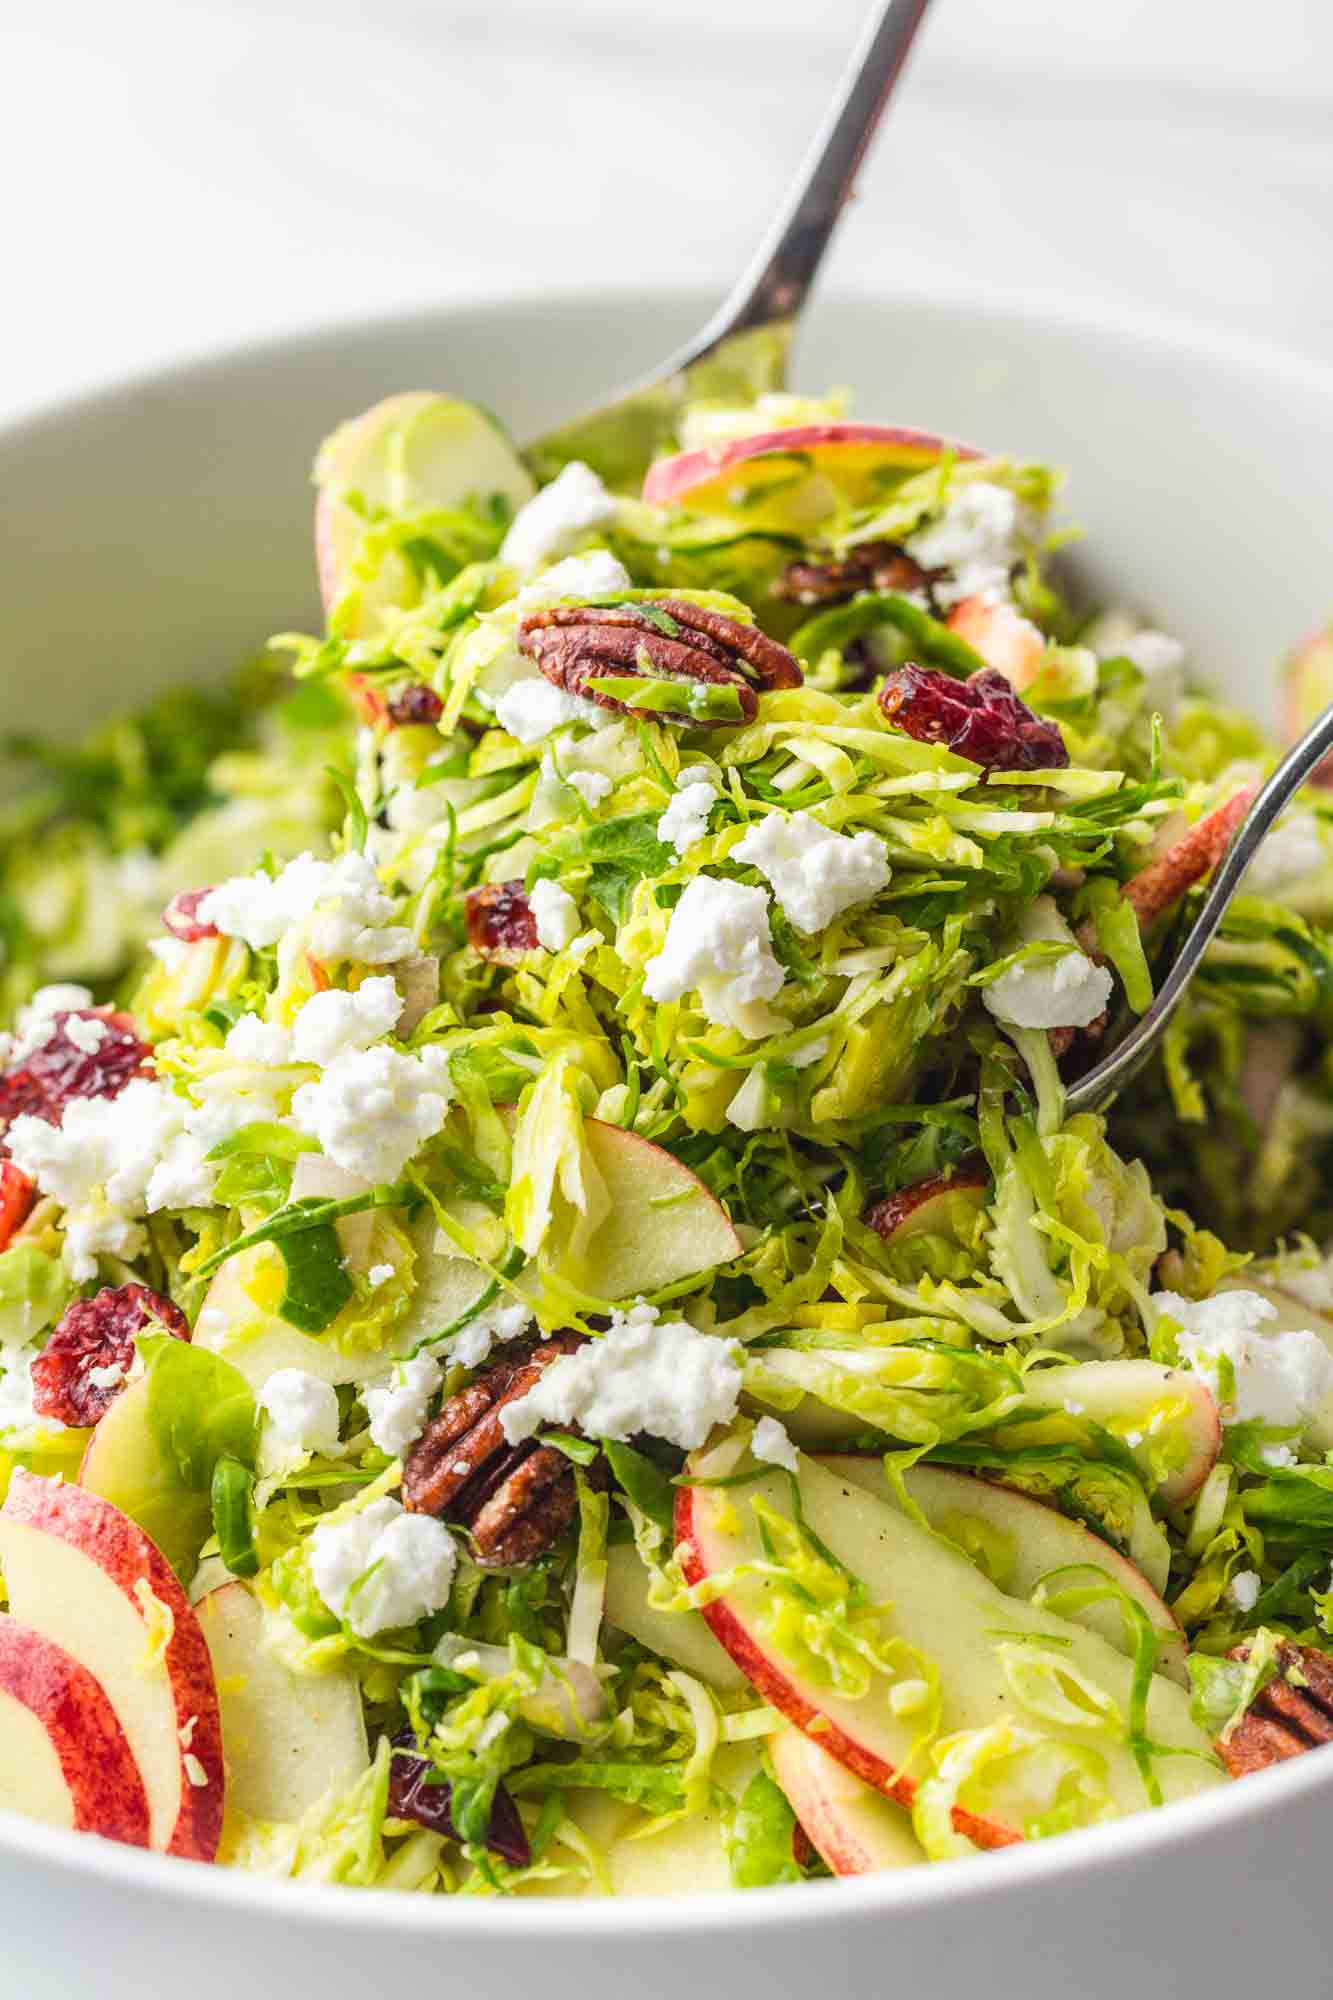 Tossing Shaved Brussels Sprout Salad using salad servers